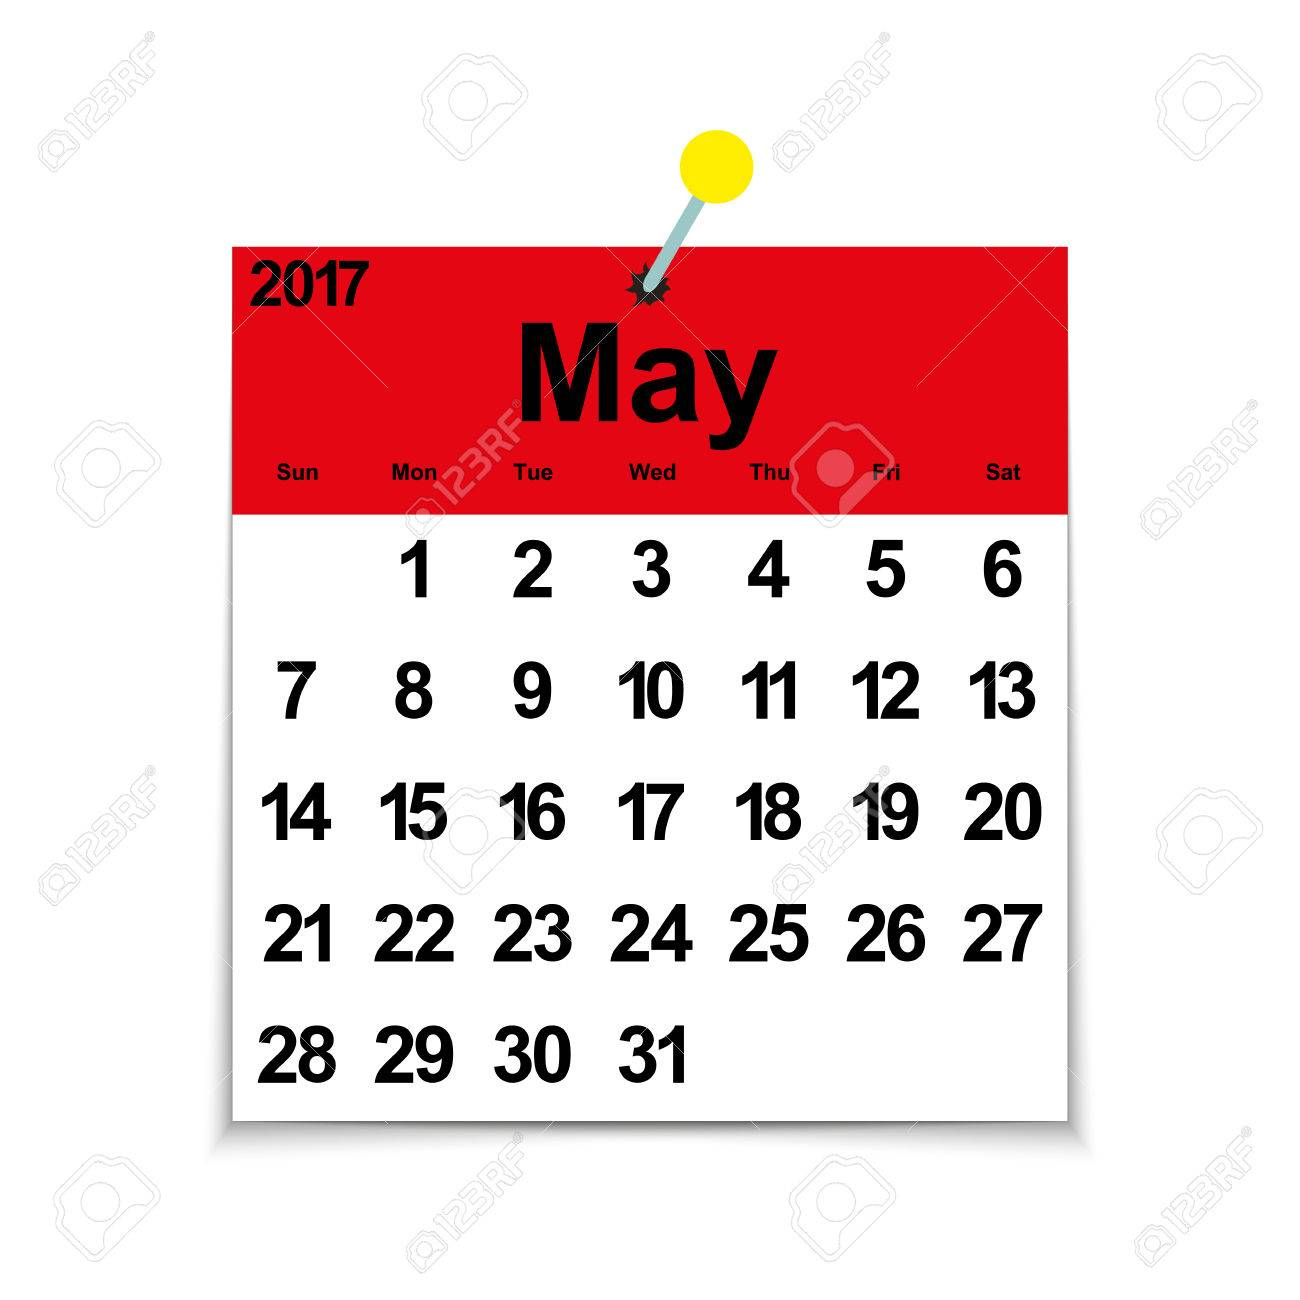 Free Calendar Clipart may 2017, Download Free Clip Art on Owips.com.